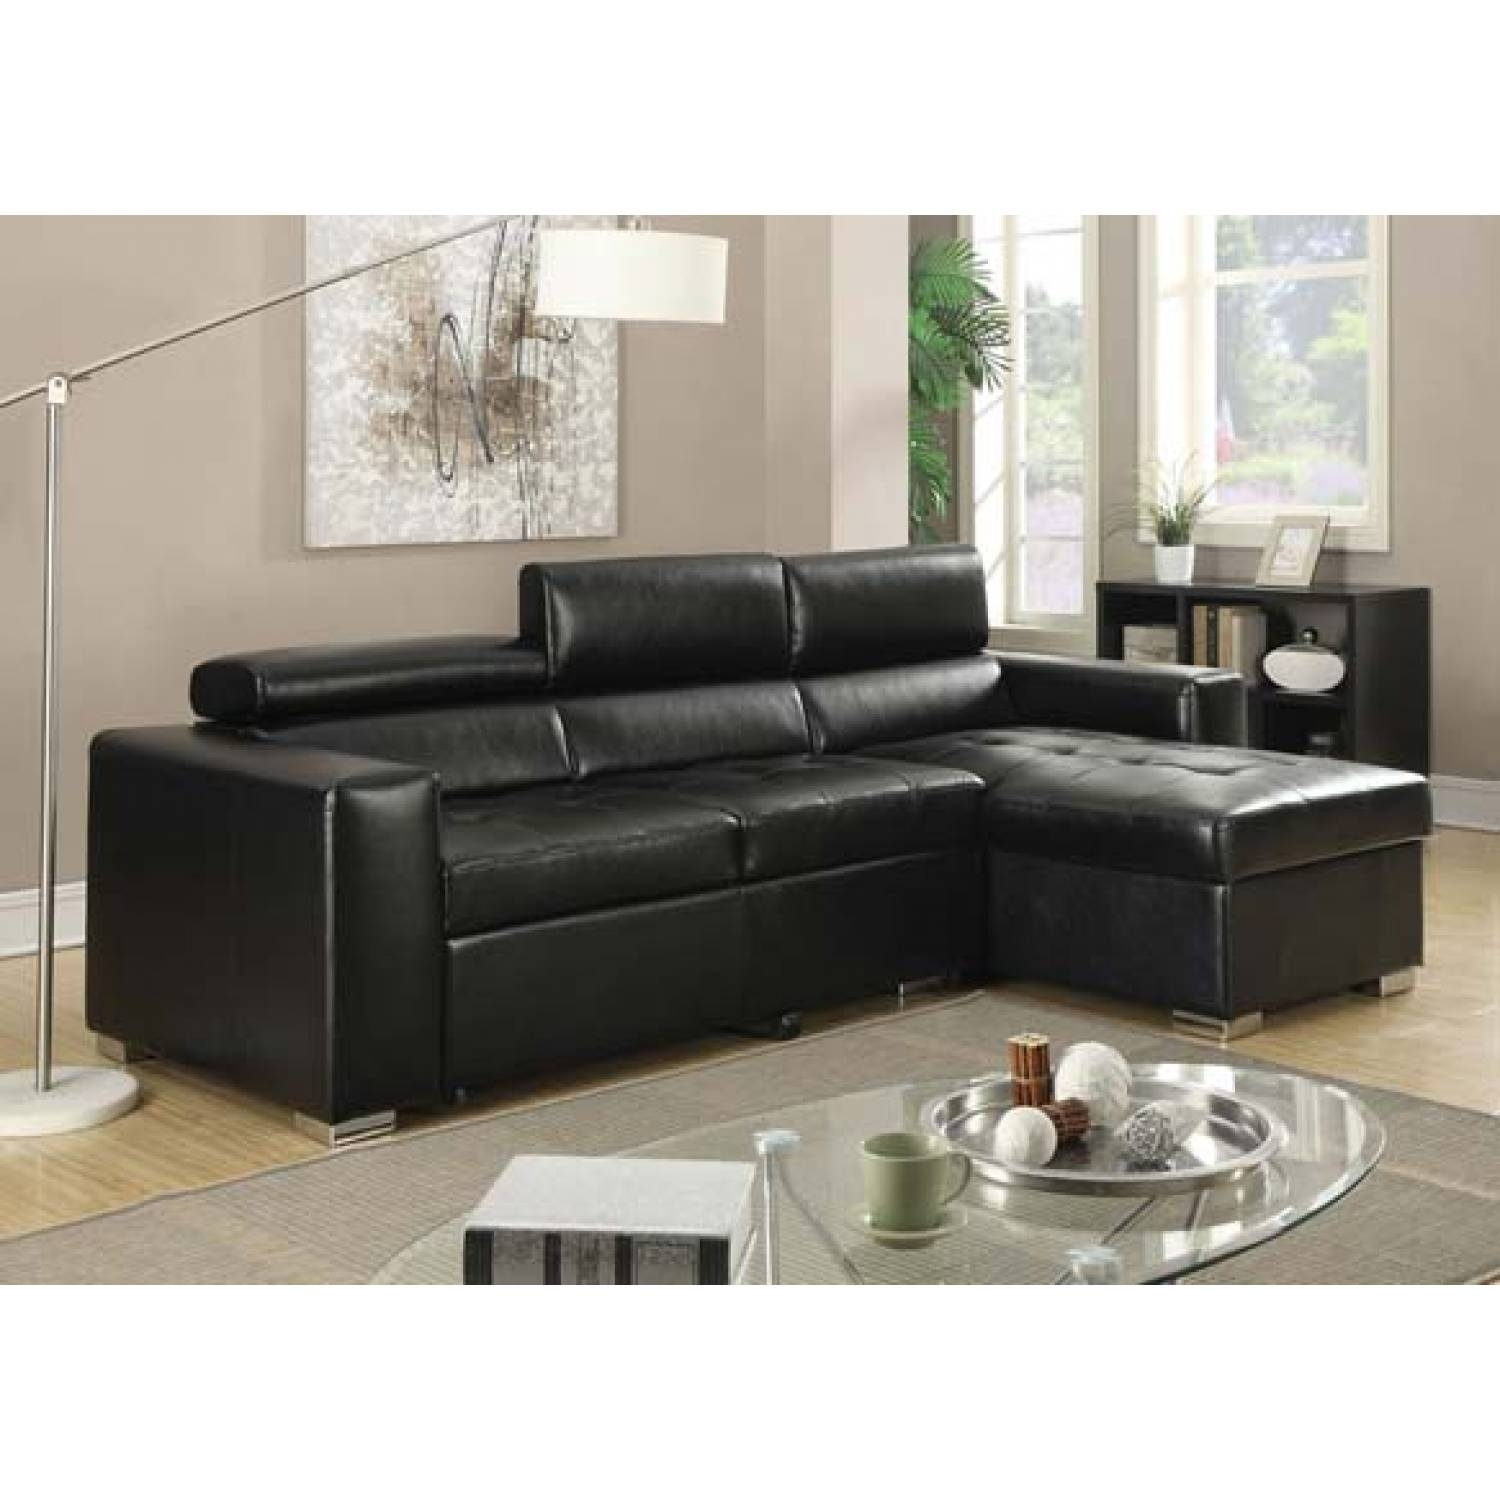 Aidan Sectional Sofa W/pull Out Bed With Regard To Aidan 4 Piece Sectionals (Image 4 of 25)